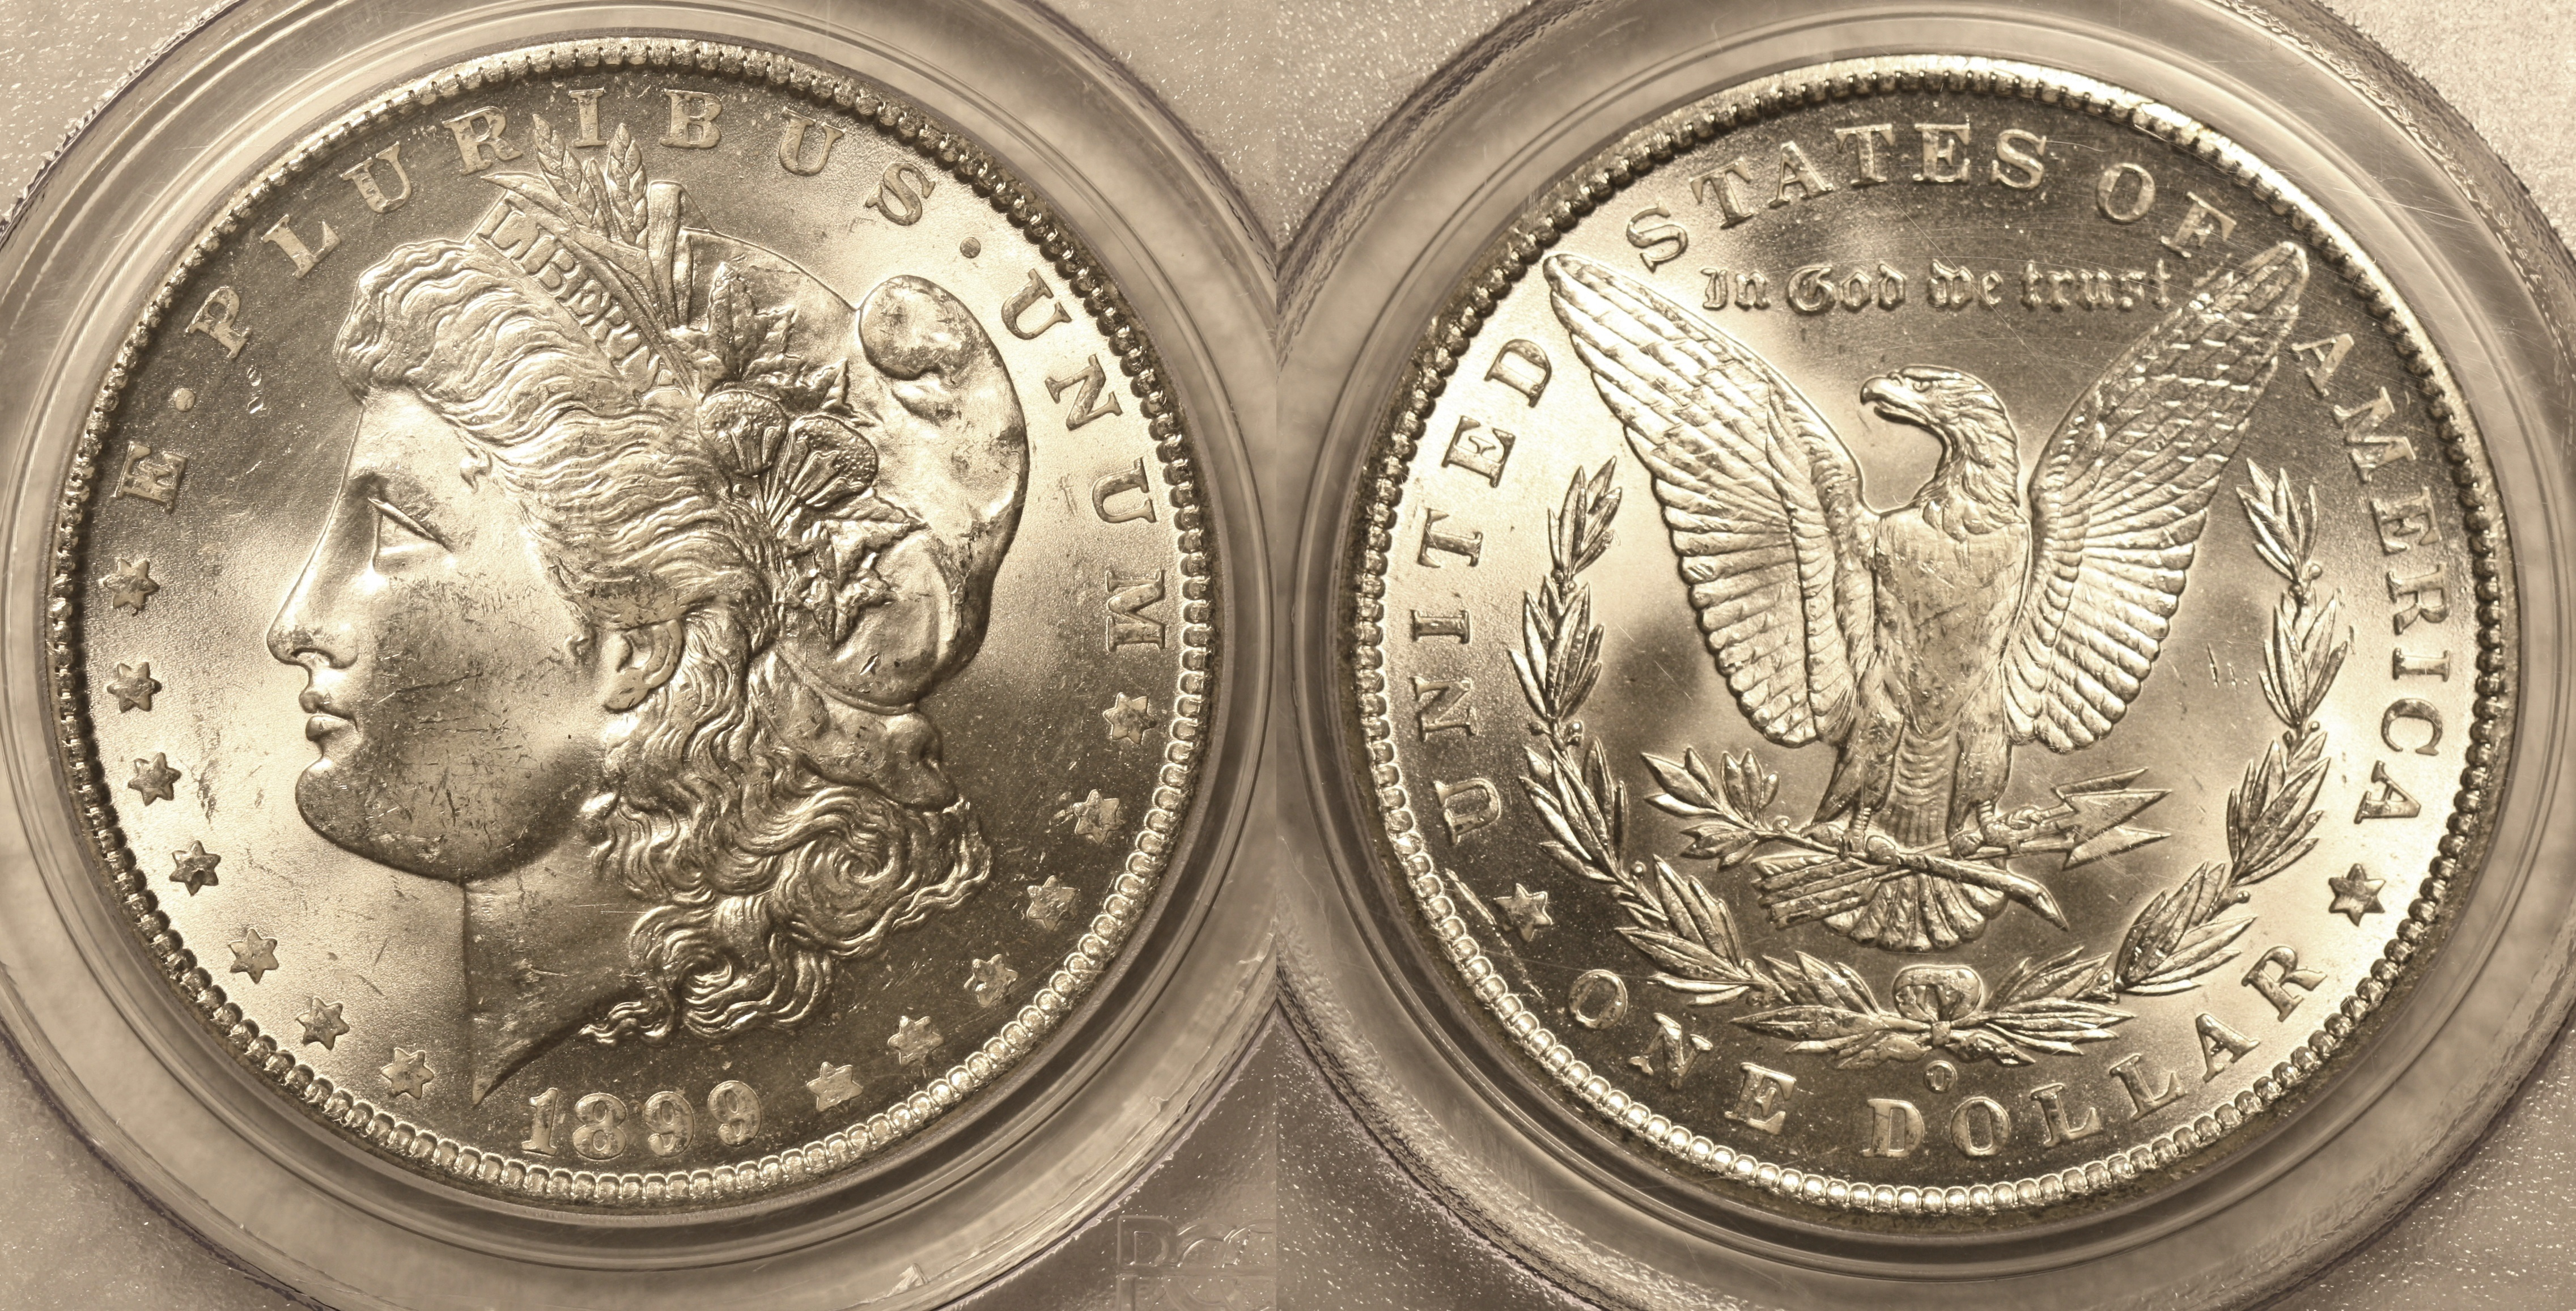 1899-O Morgan Silver Dollar PCGS MS-63 camera